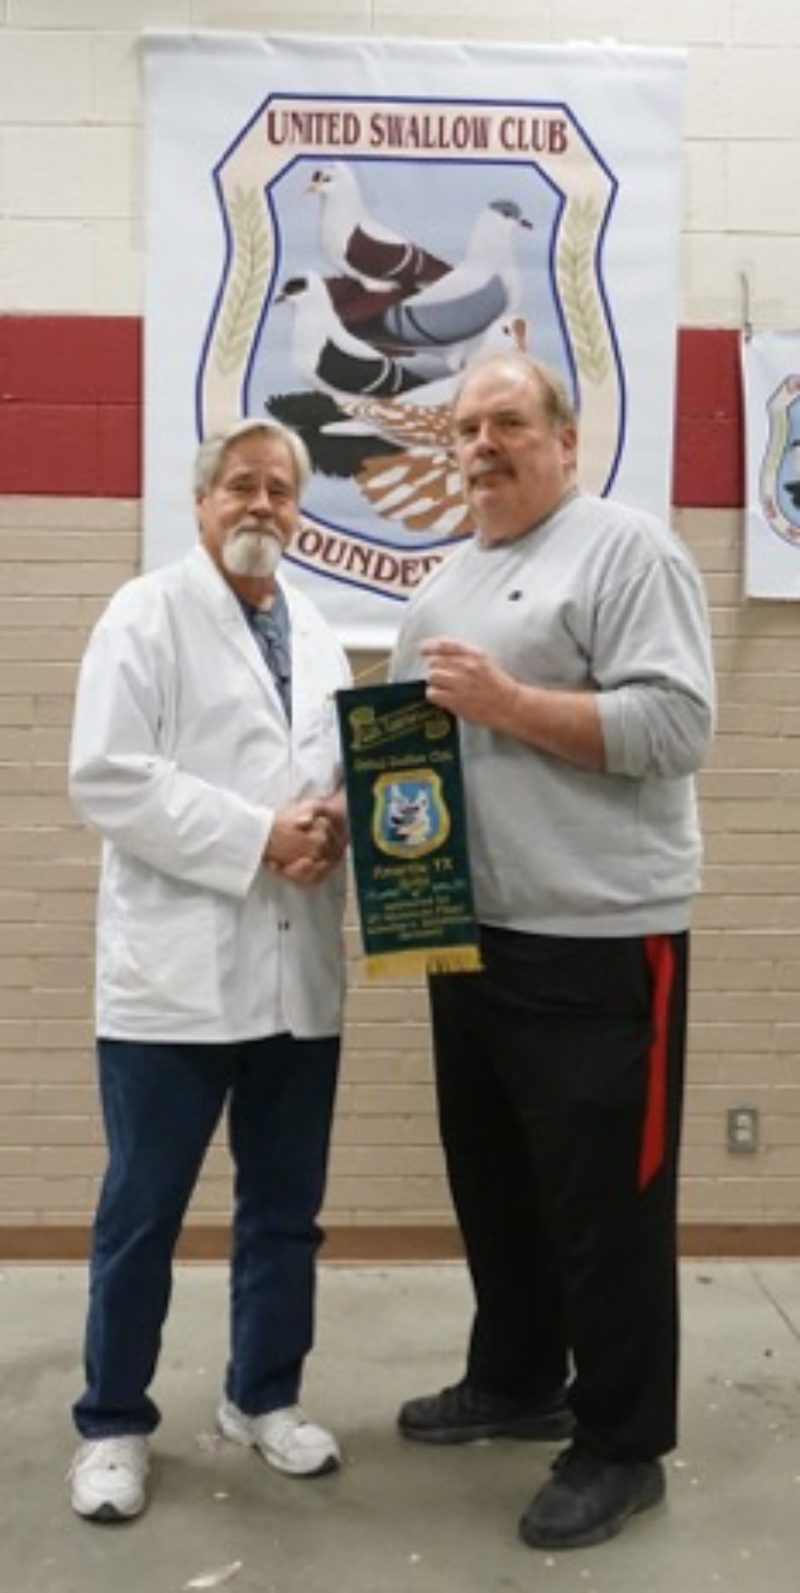 Chris Auer Award from Griebel